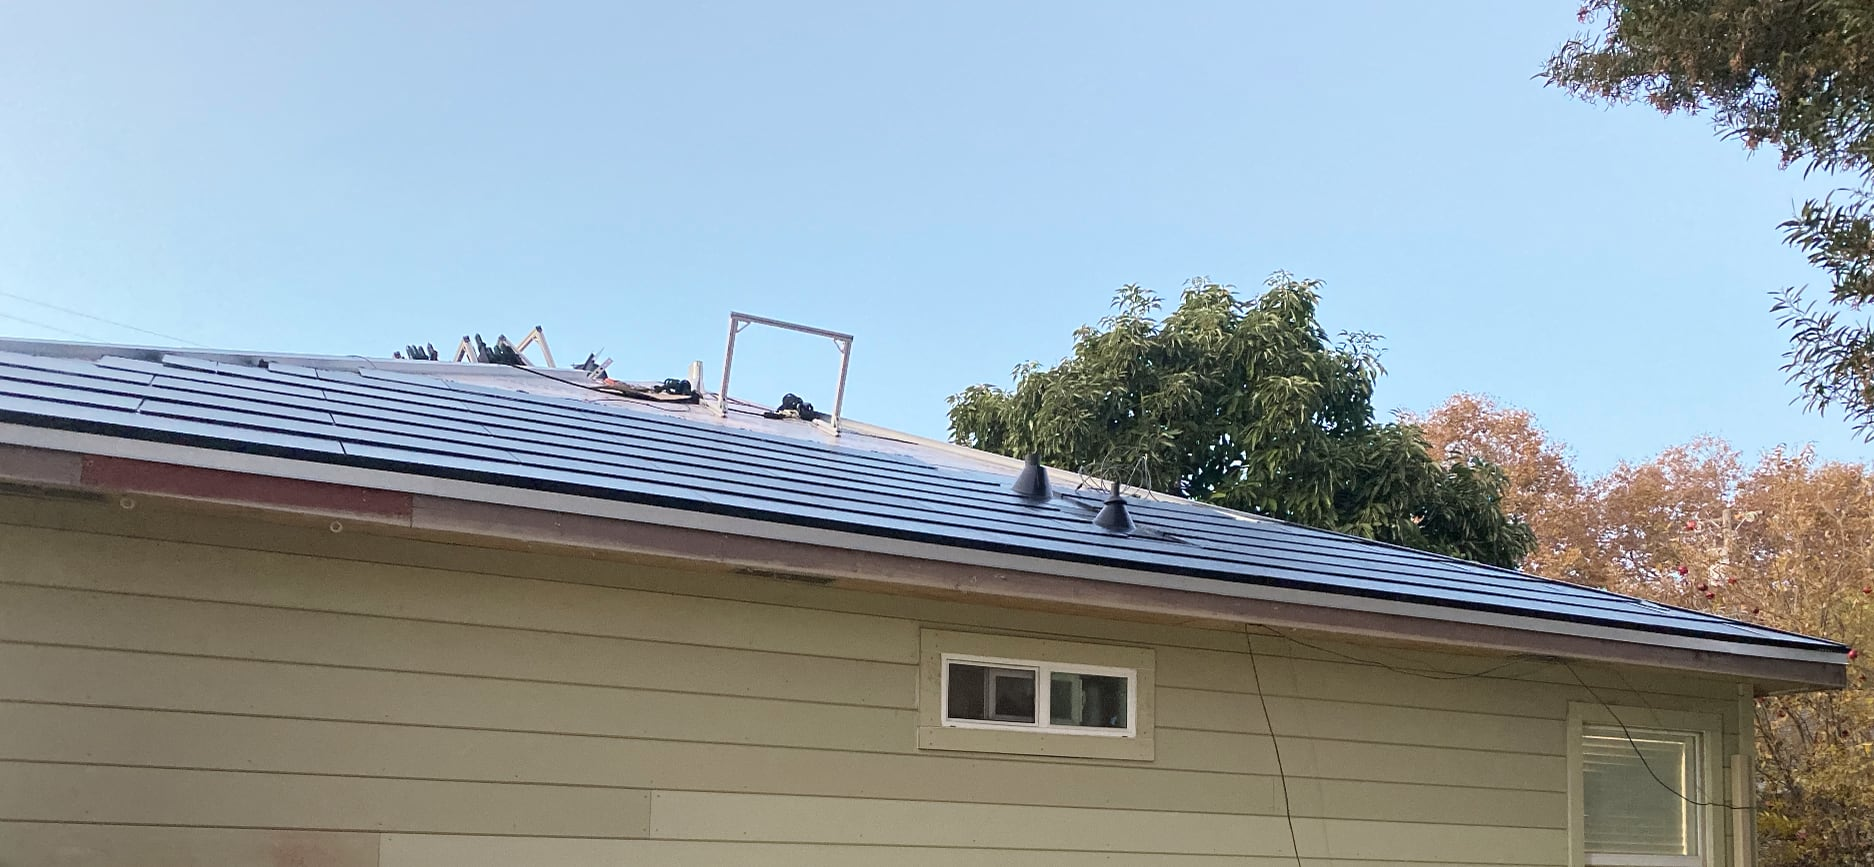 Another imge of the same section of the roof, featuring the roof about 75% full of Tesla Solarglass tiles.